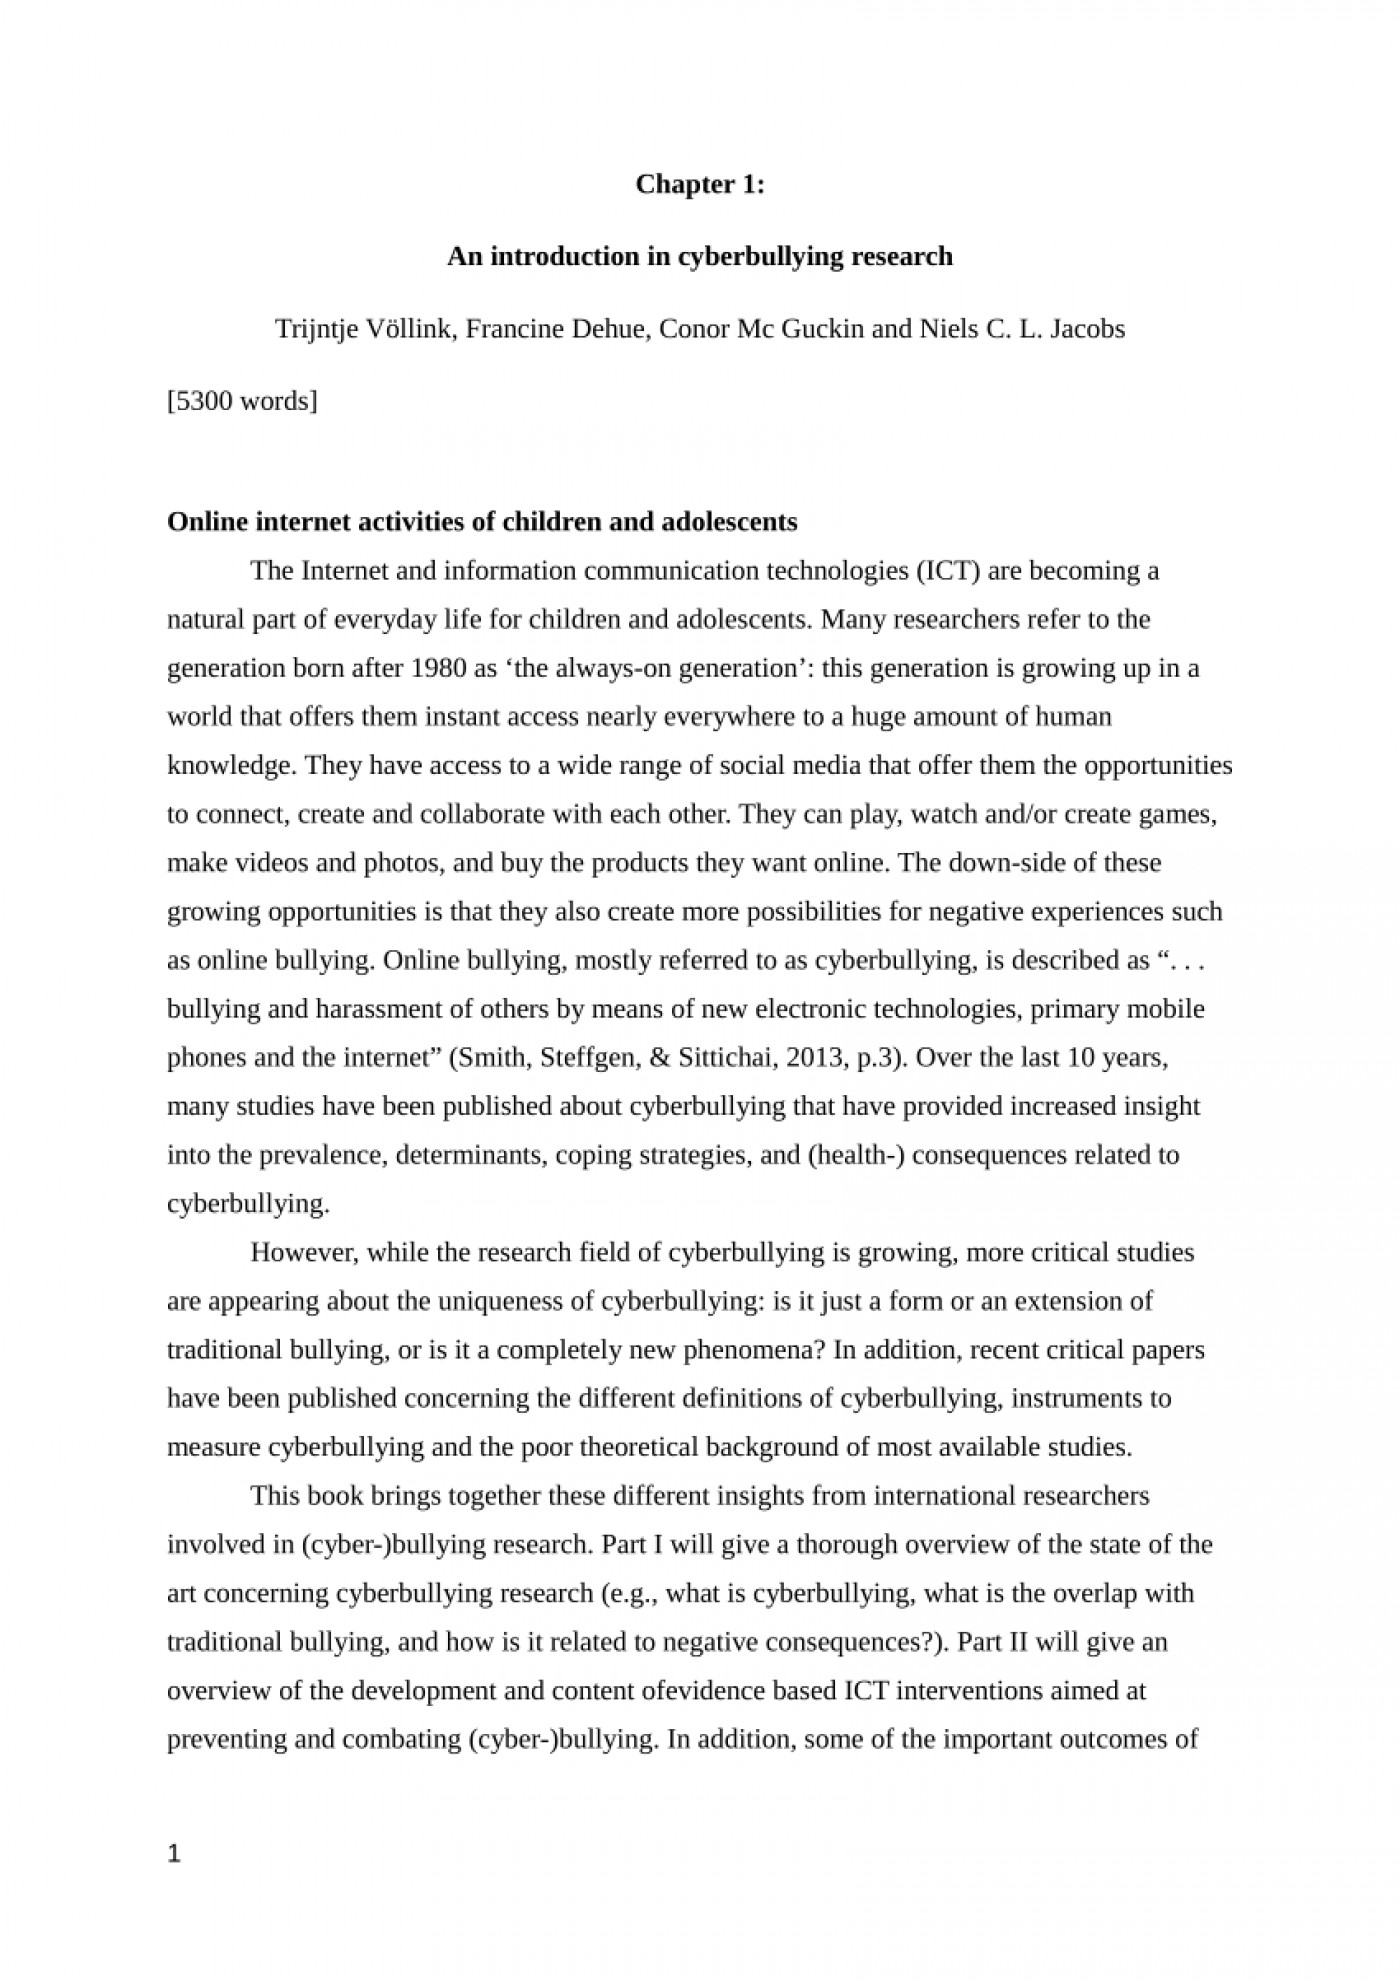 001 Cyberbullying Research Paper Pdf Unique Effects Of 1400